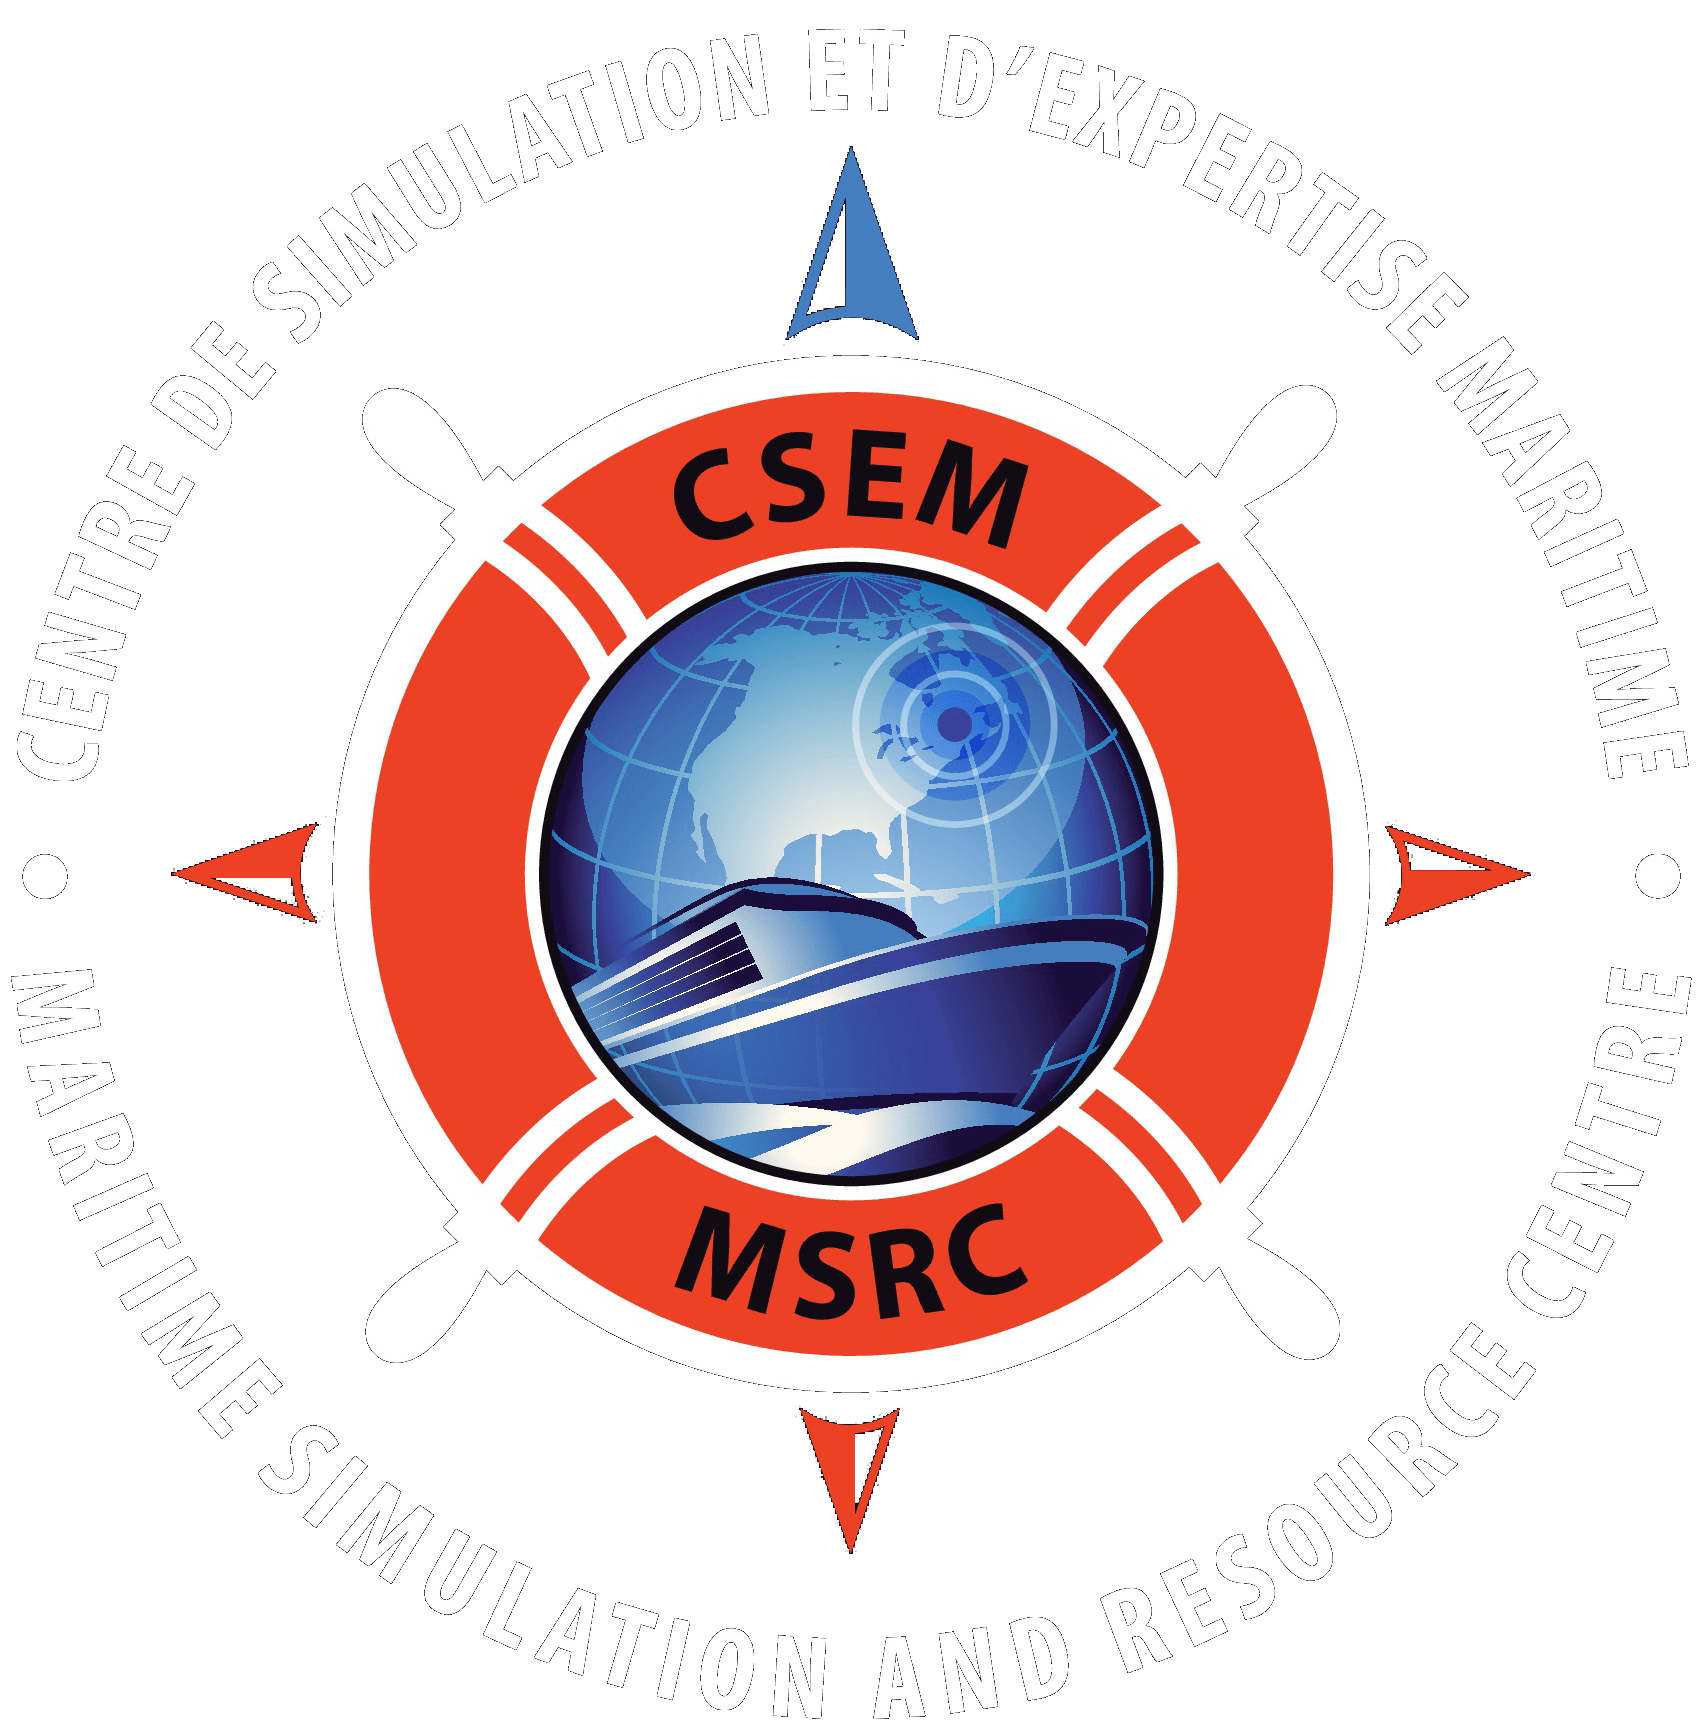 Maritime Simulation and Resource Centre (MSRC) - Training programs